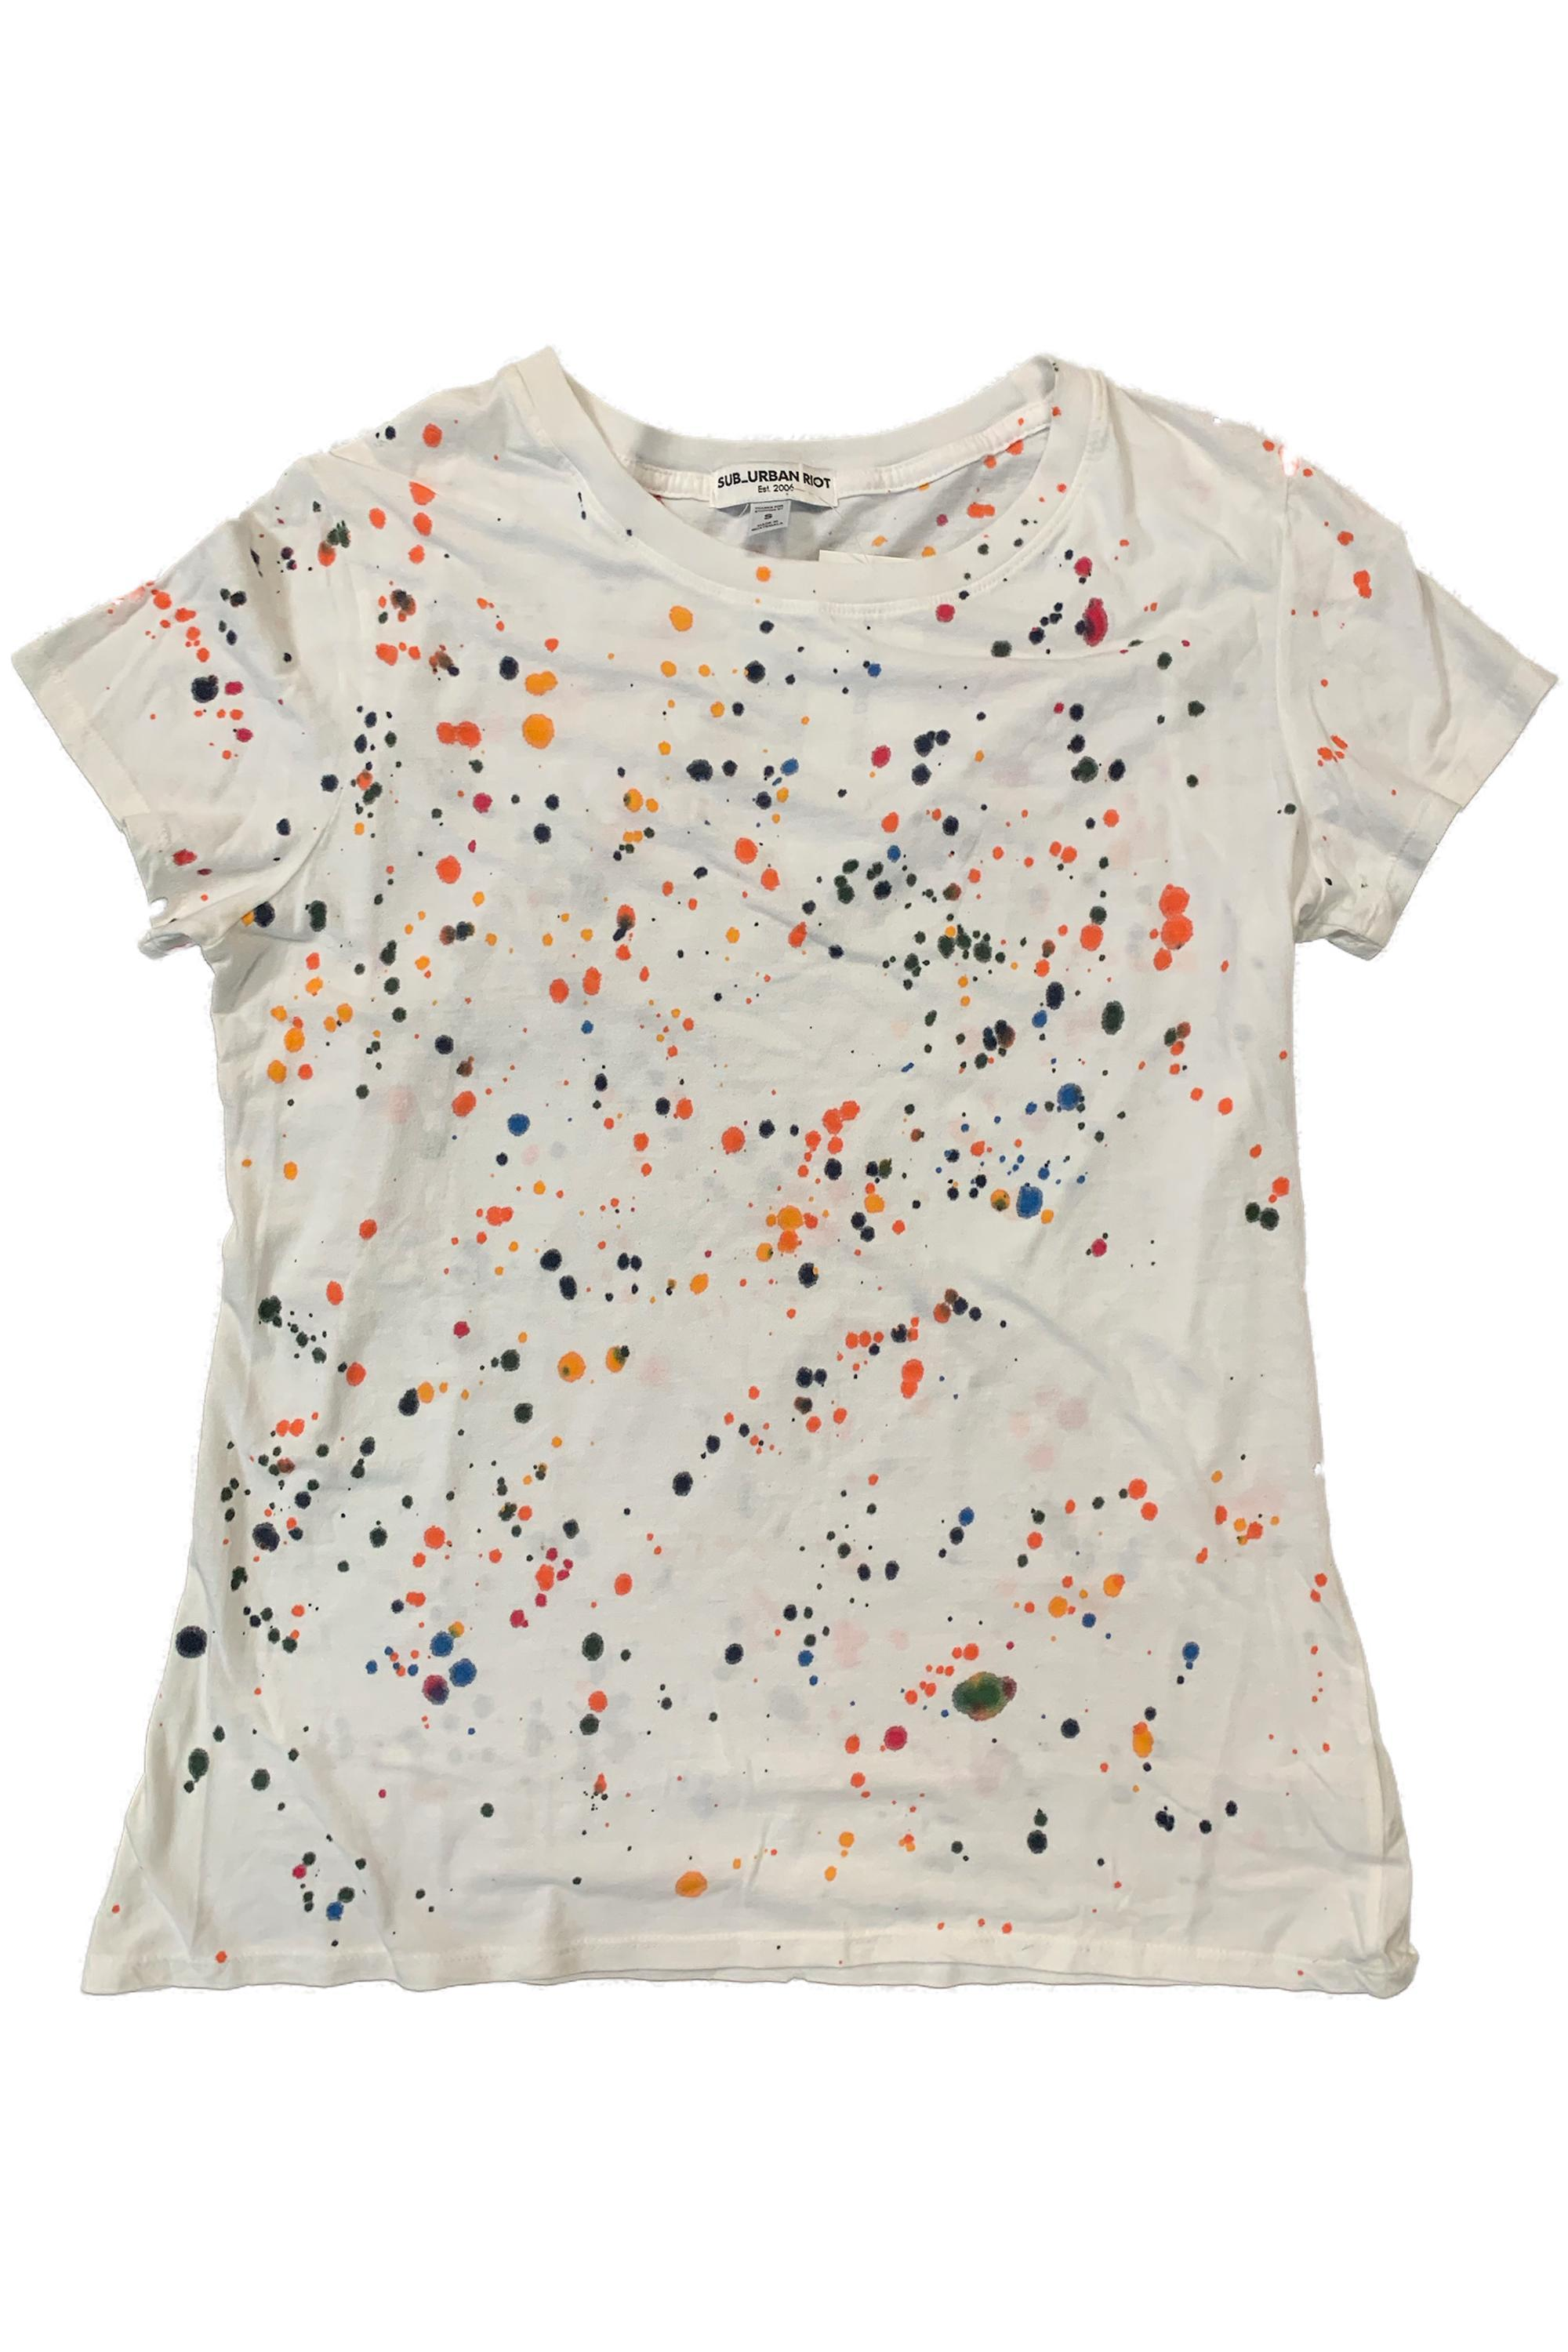 SPLATTER PAINT YOUTH SIZE LOOSE TEE